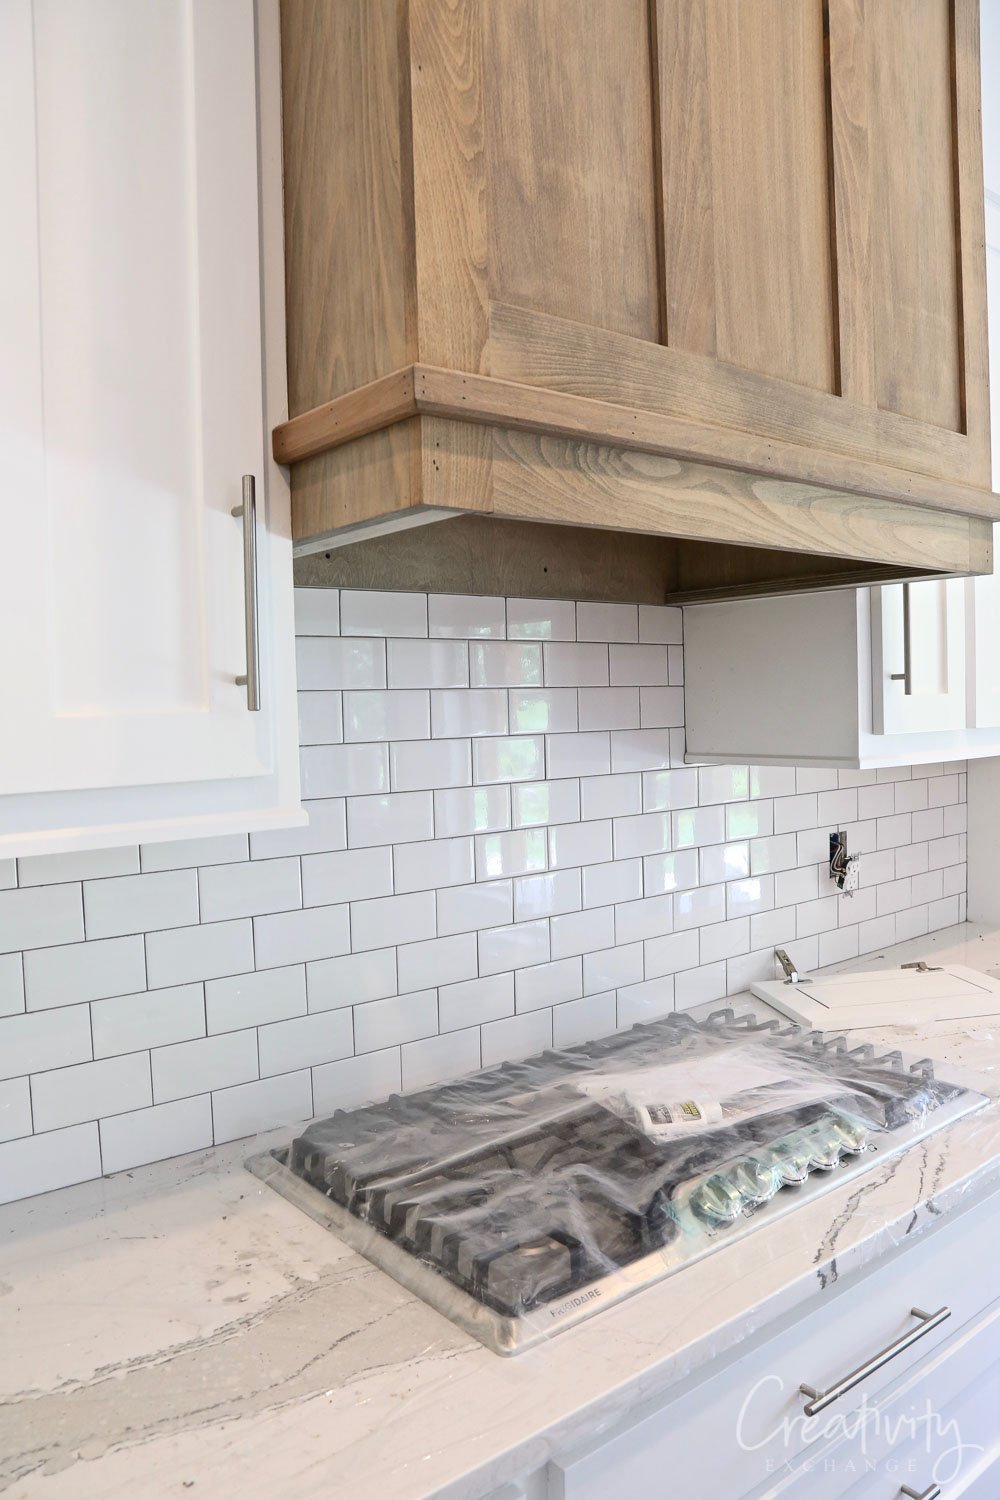 White subway tile with medium gray grout